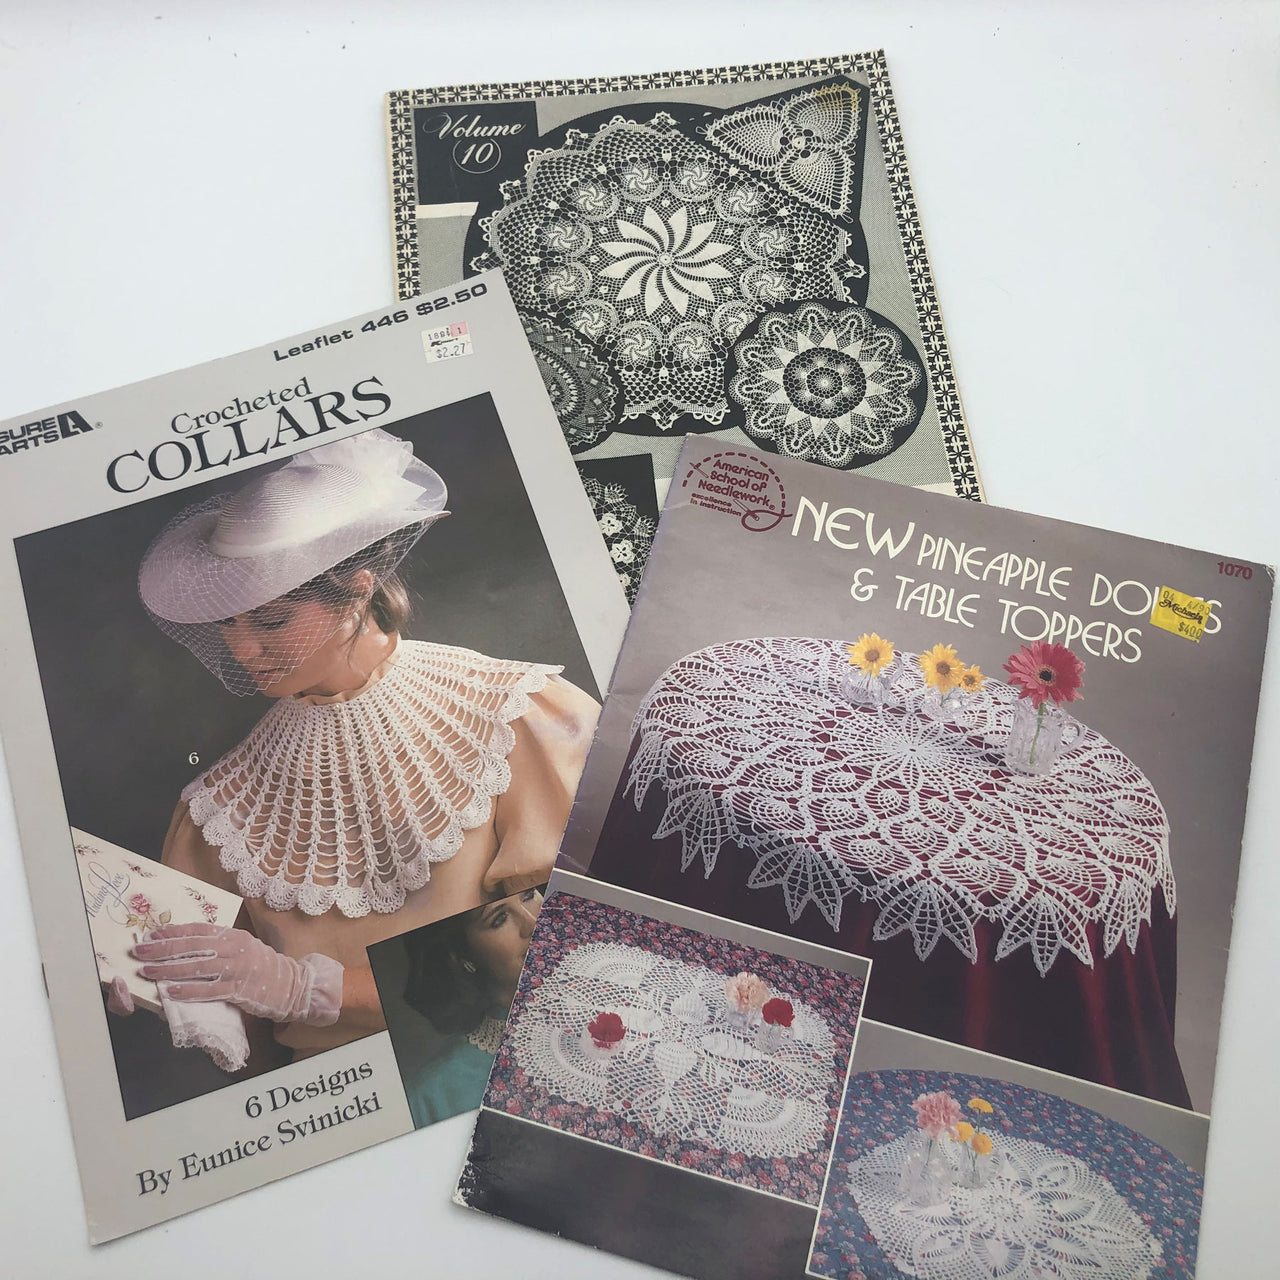 3 Crochet Books with Design Patterns Pineapple Doilies Table Toppers Collars